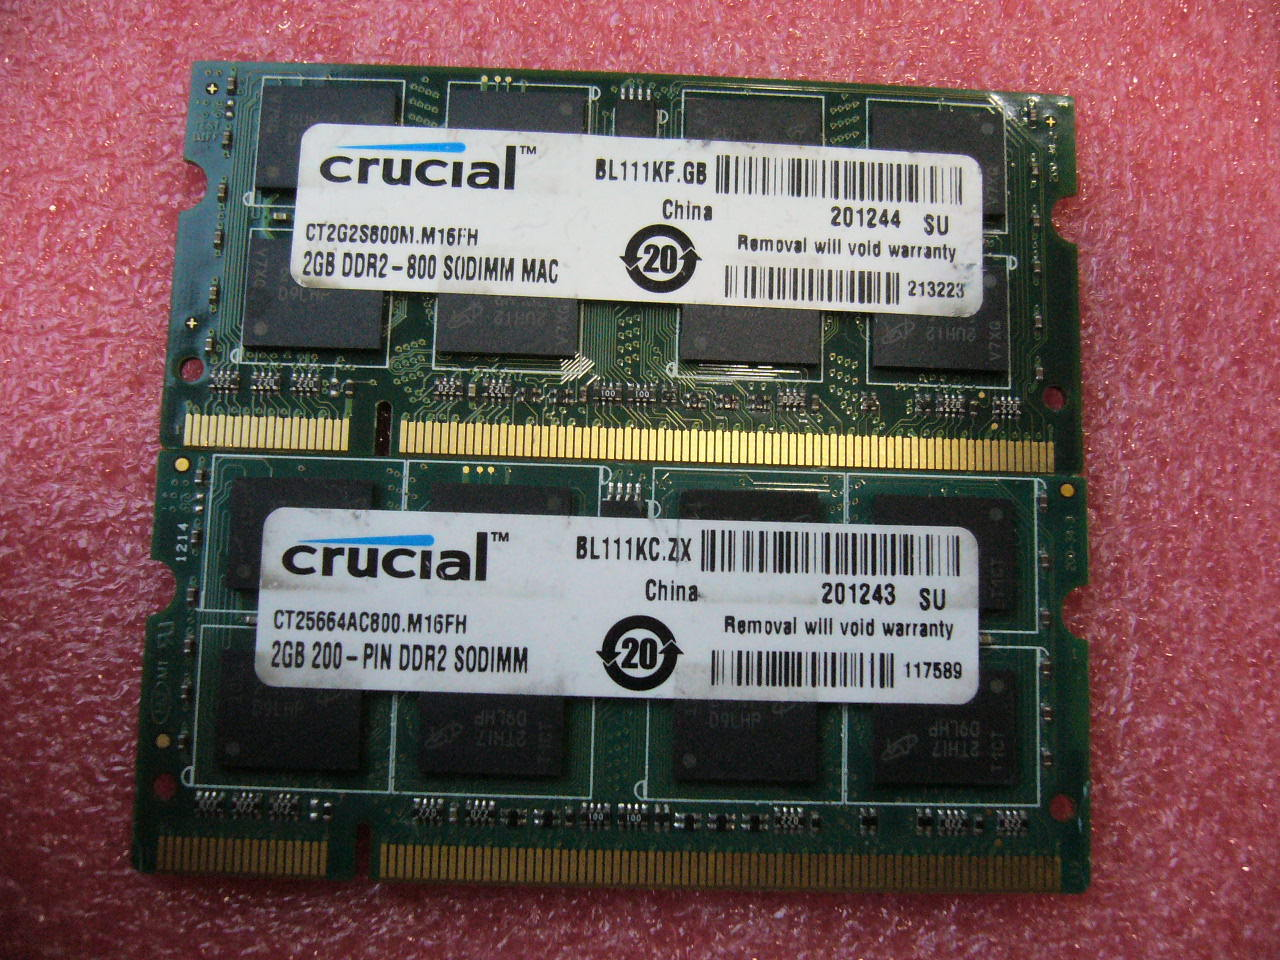 4GB Lot, QTY 2x 2GB Crucial DDR2 PC2-6400S 200-pins SO-DIMM memory for laptop